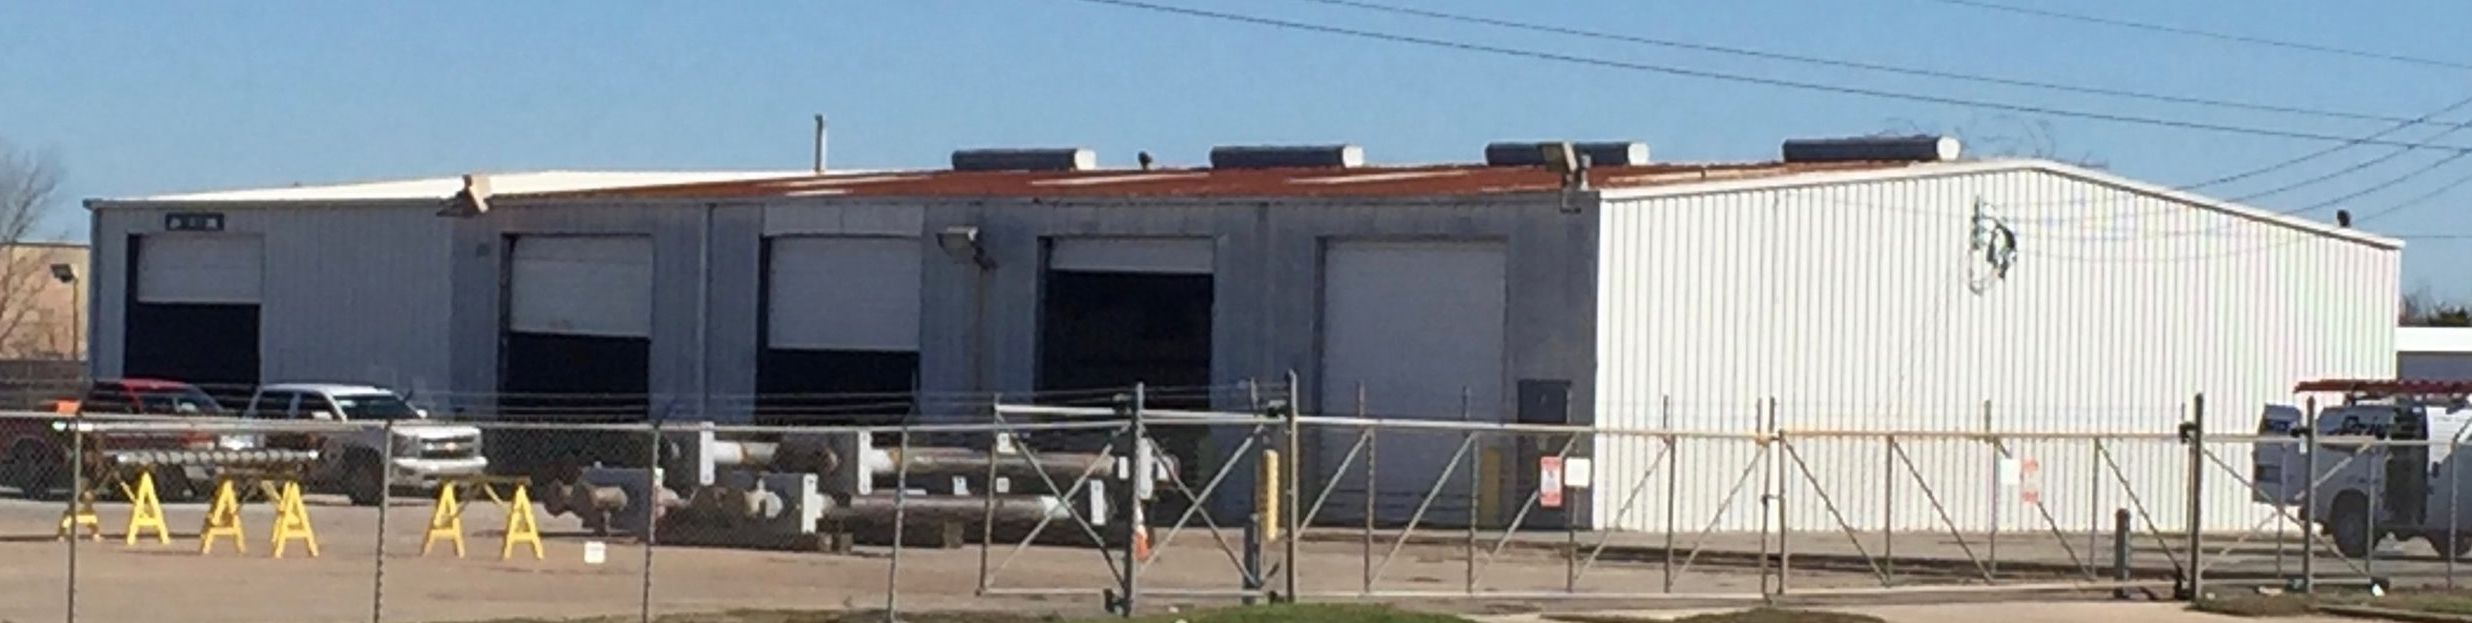 Before, abandoned, ignored. Front view. Metal roofing contractor, metal building renovation project.